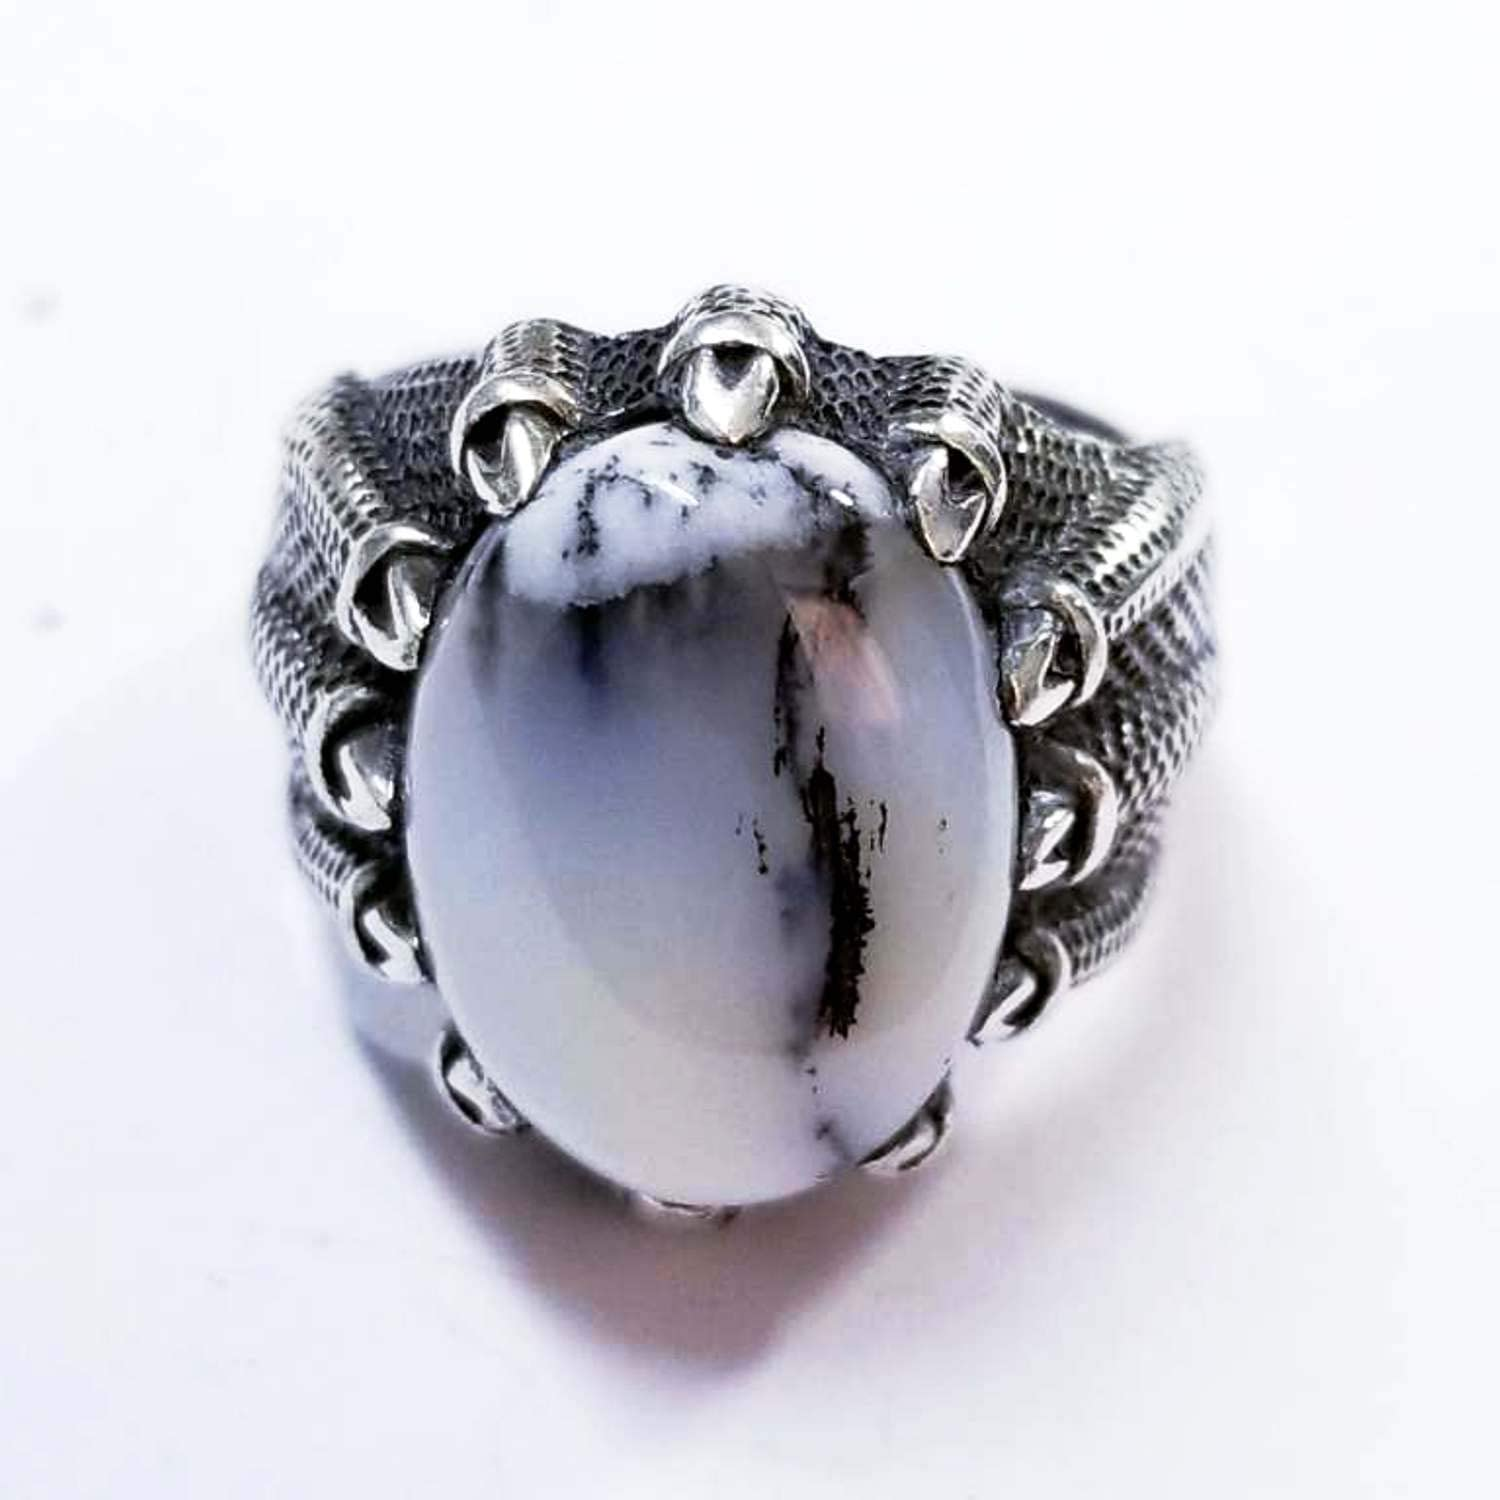 high stone agate100/% yemen white agate aqeeq aqeeq ring sterling silver 925 natural gemstone men jewelry any size middle eastern